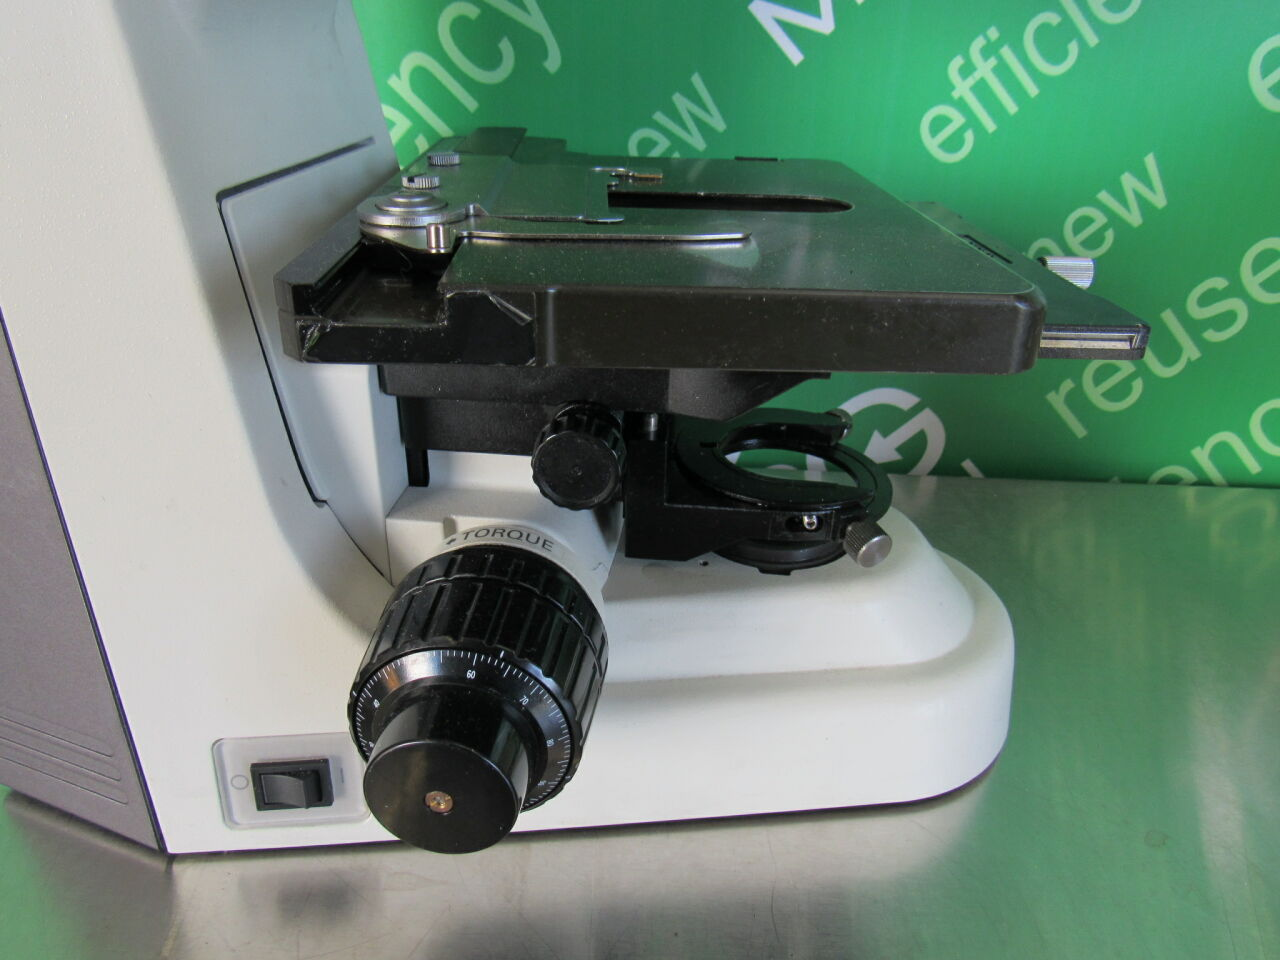 NIKON Eclipse 501  Microscope